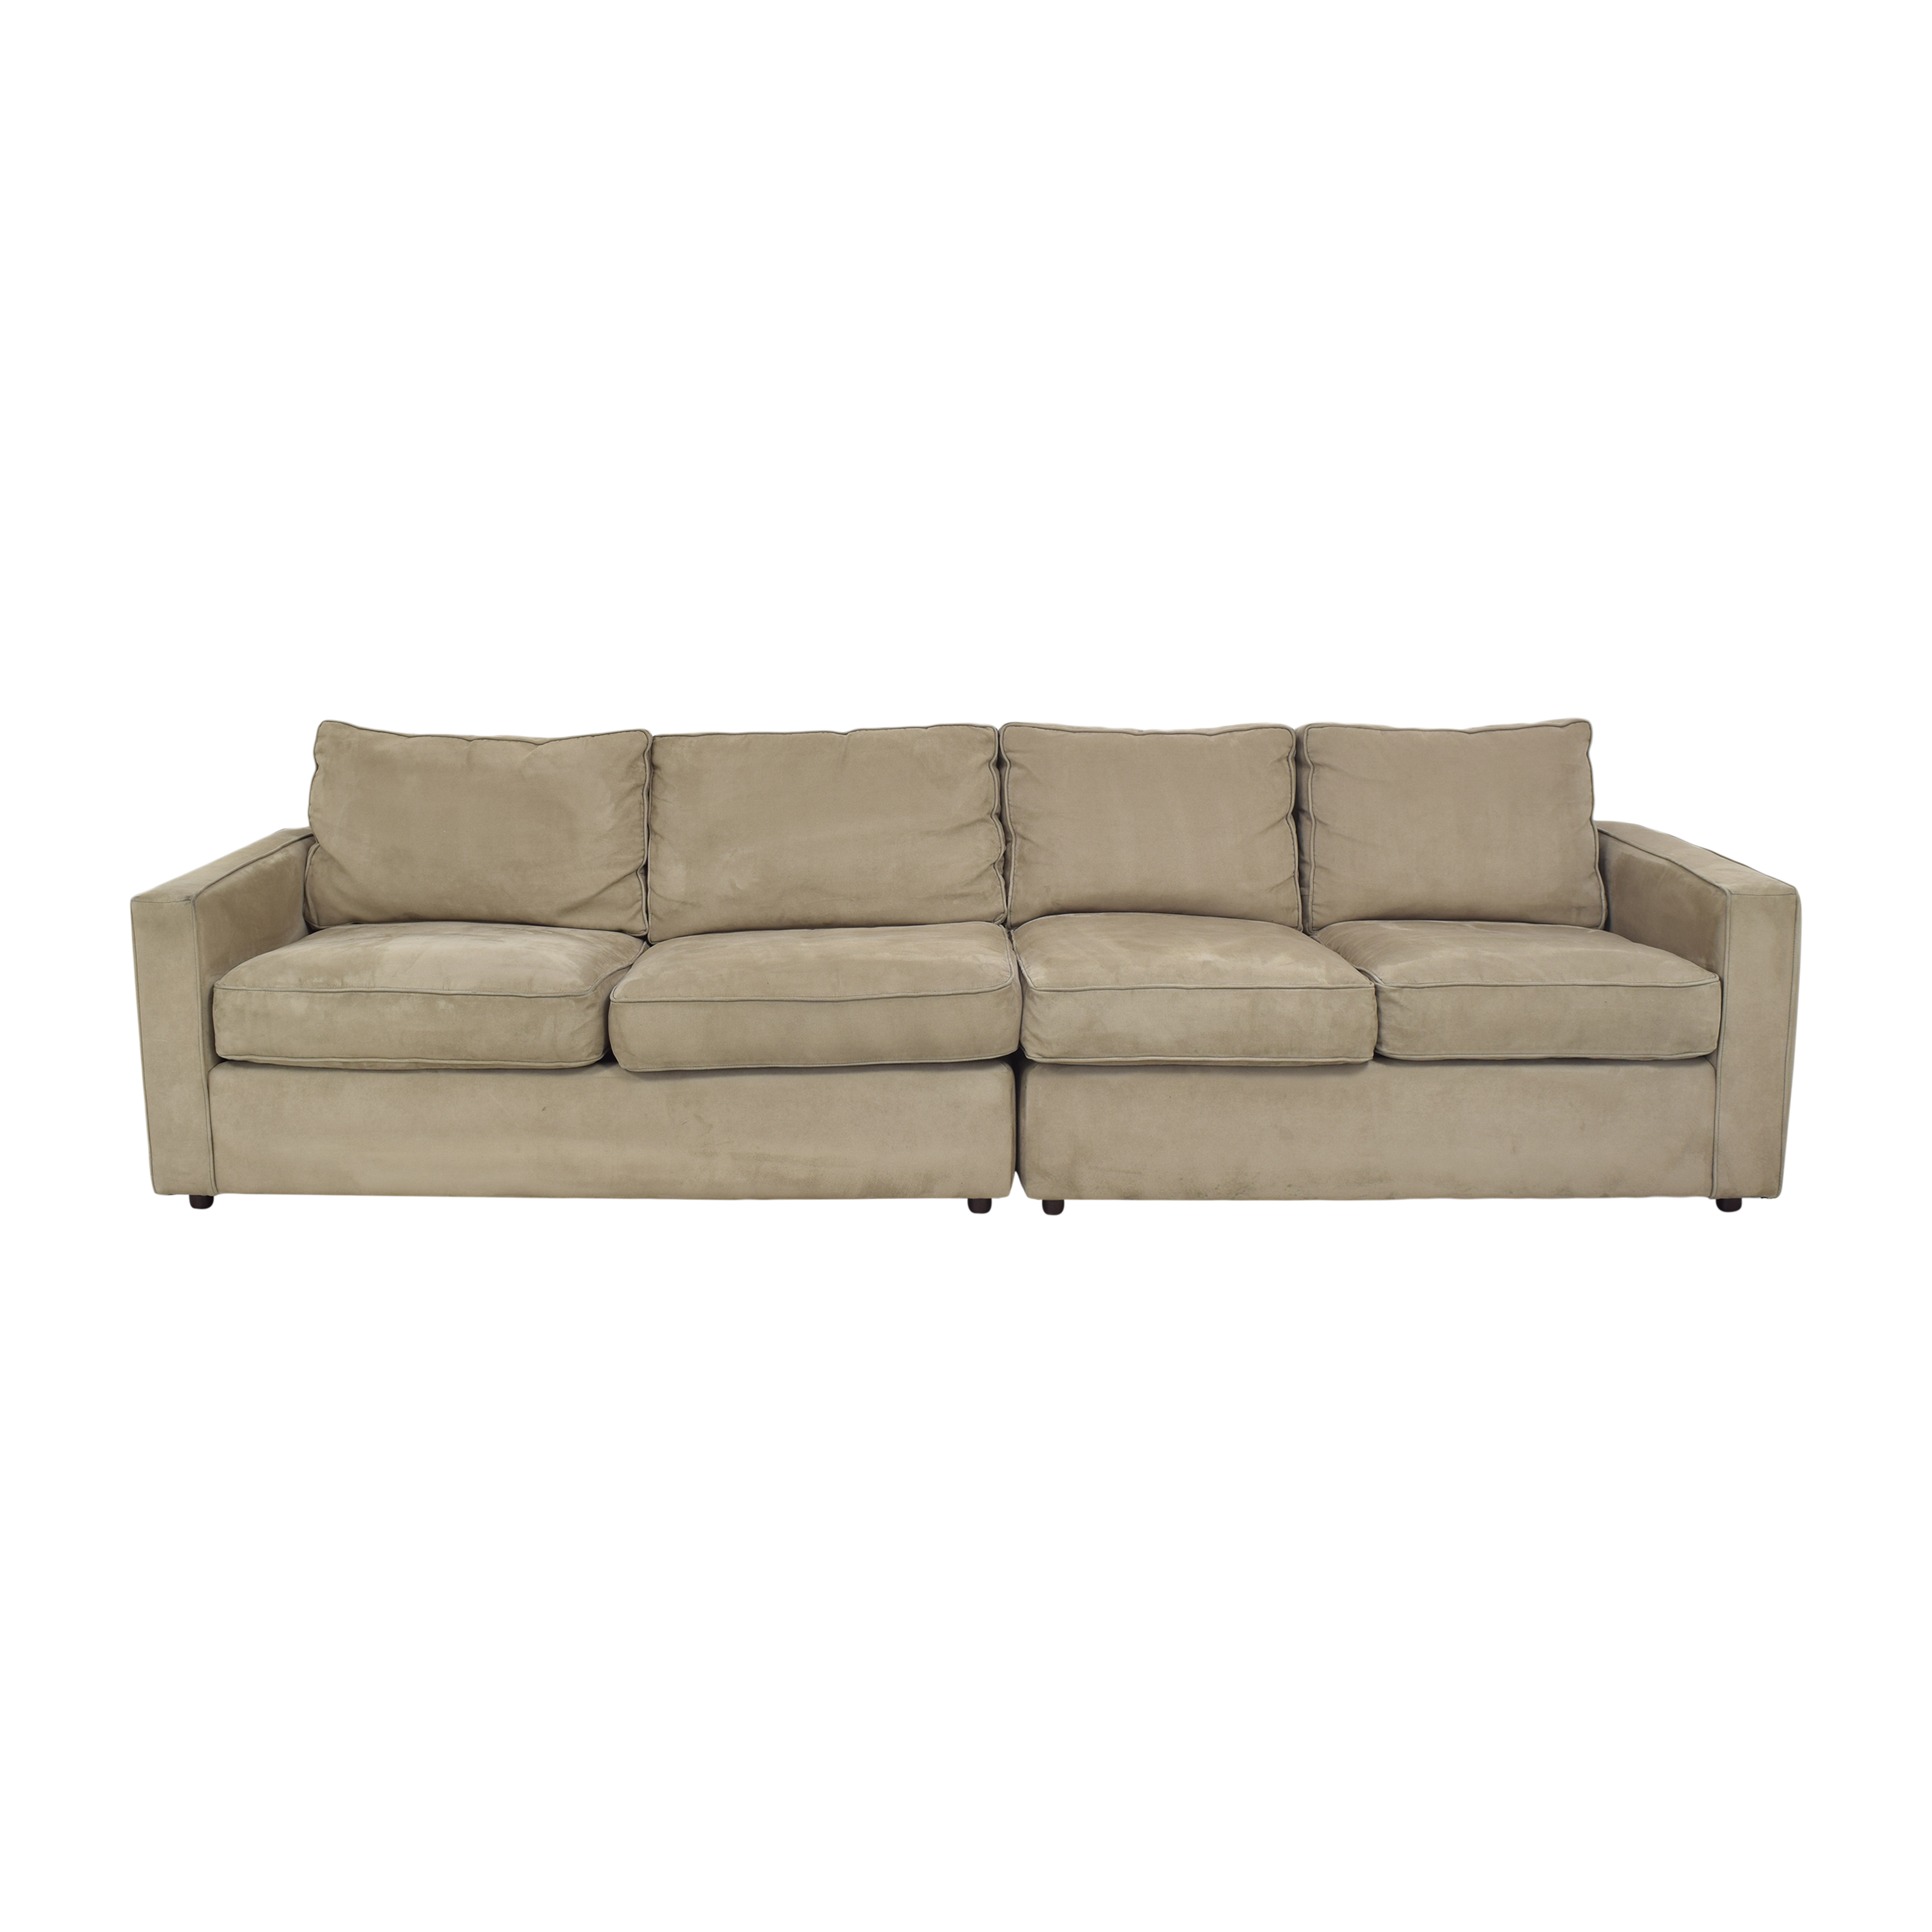 Room & Board Room & Board Two Piece Sectional Sofa on sale